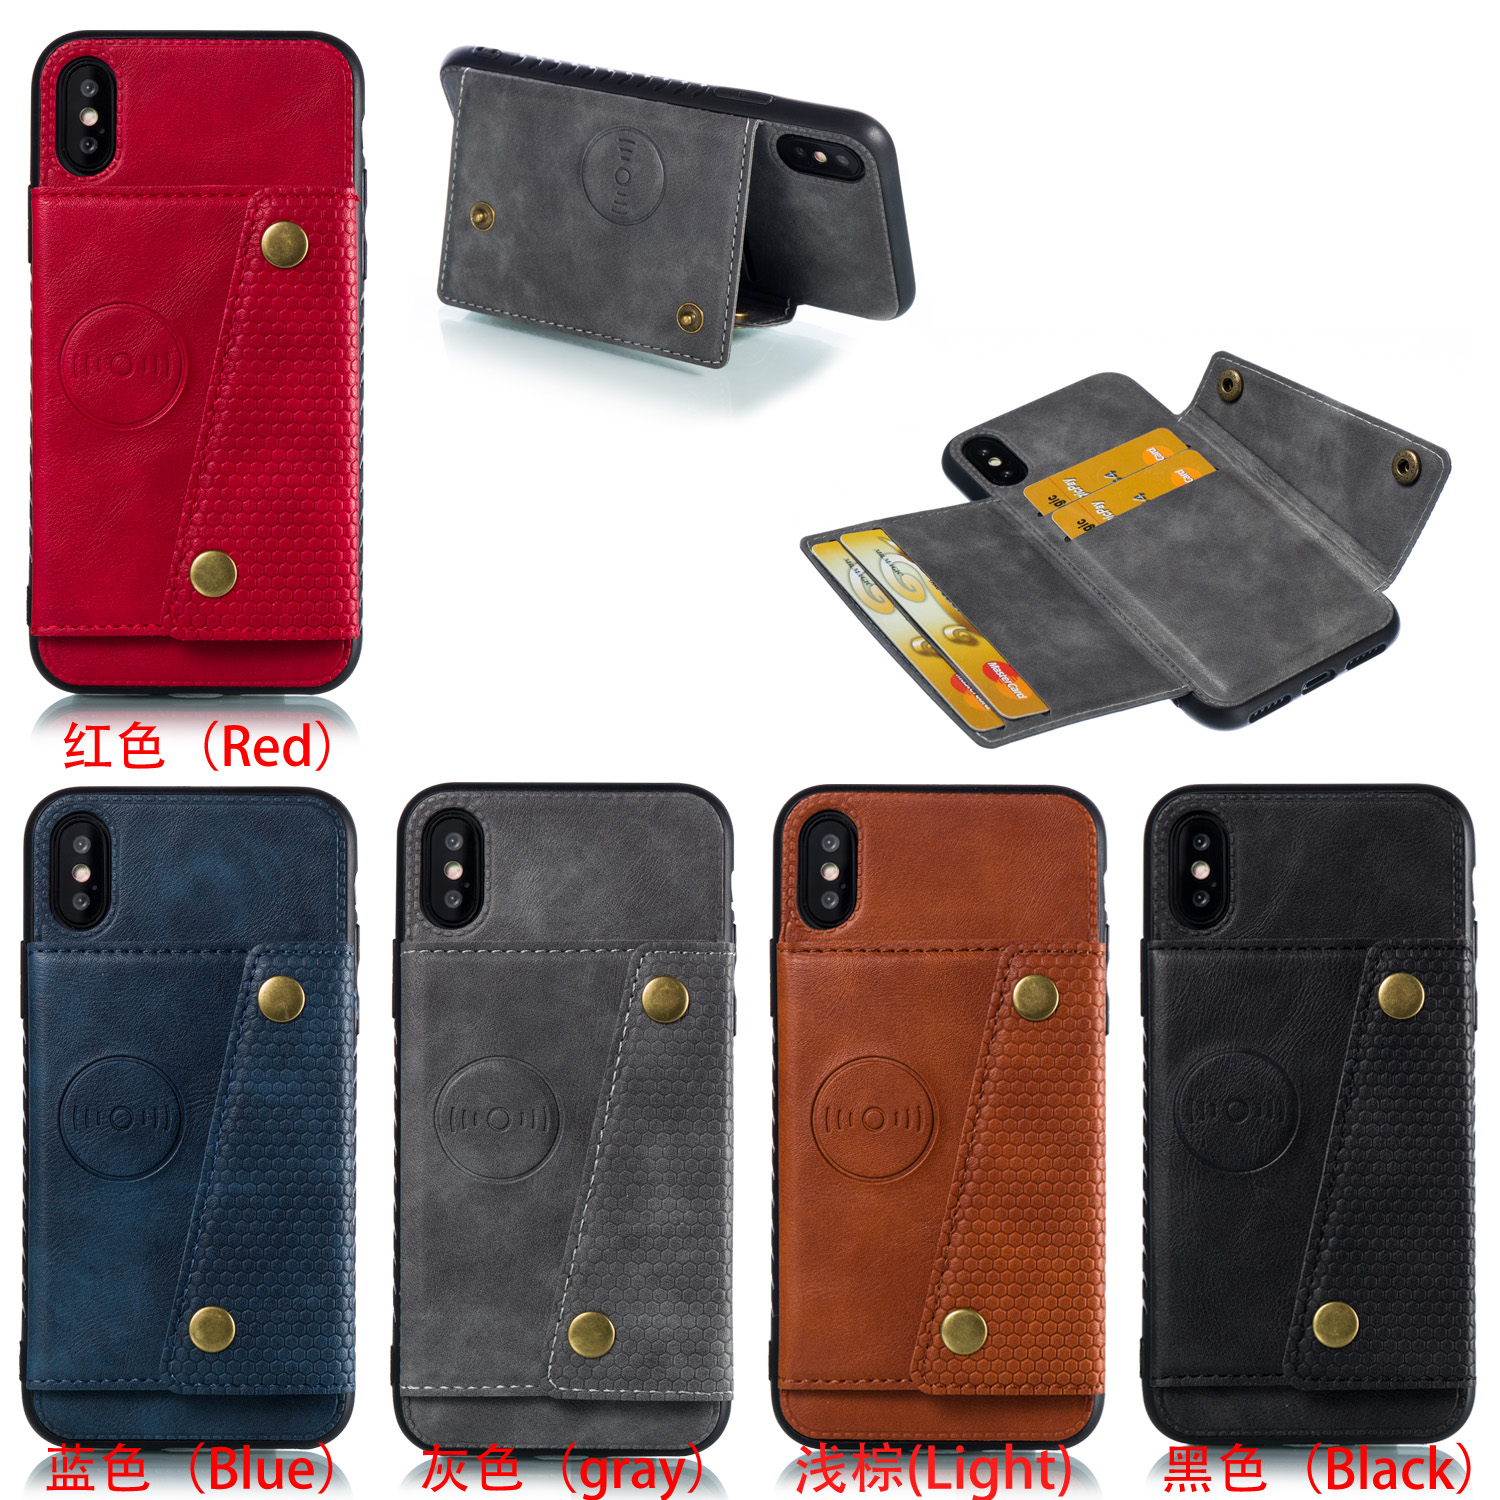 Multi Card Holders Wallet Case For iPhone 11 Pro Max Xs Max XR X Magnet Buckle Multi Card Holders Wallet Case For iPhone 11 Pro Max Xs Max XR X Magnet Buckle Cover for iPhone 6 6S 7 8 Plus Case with Bracket